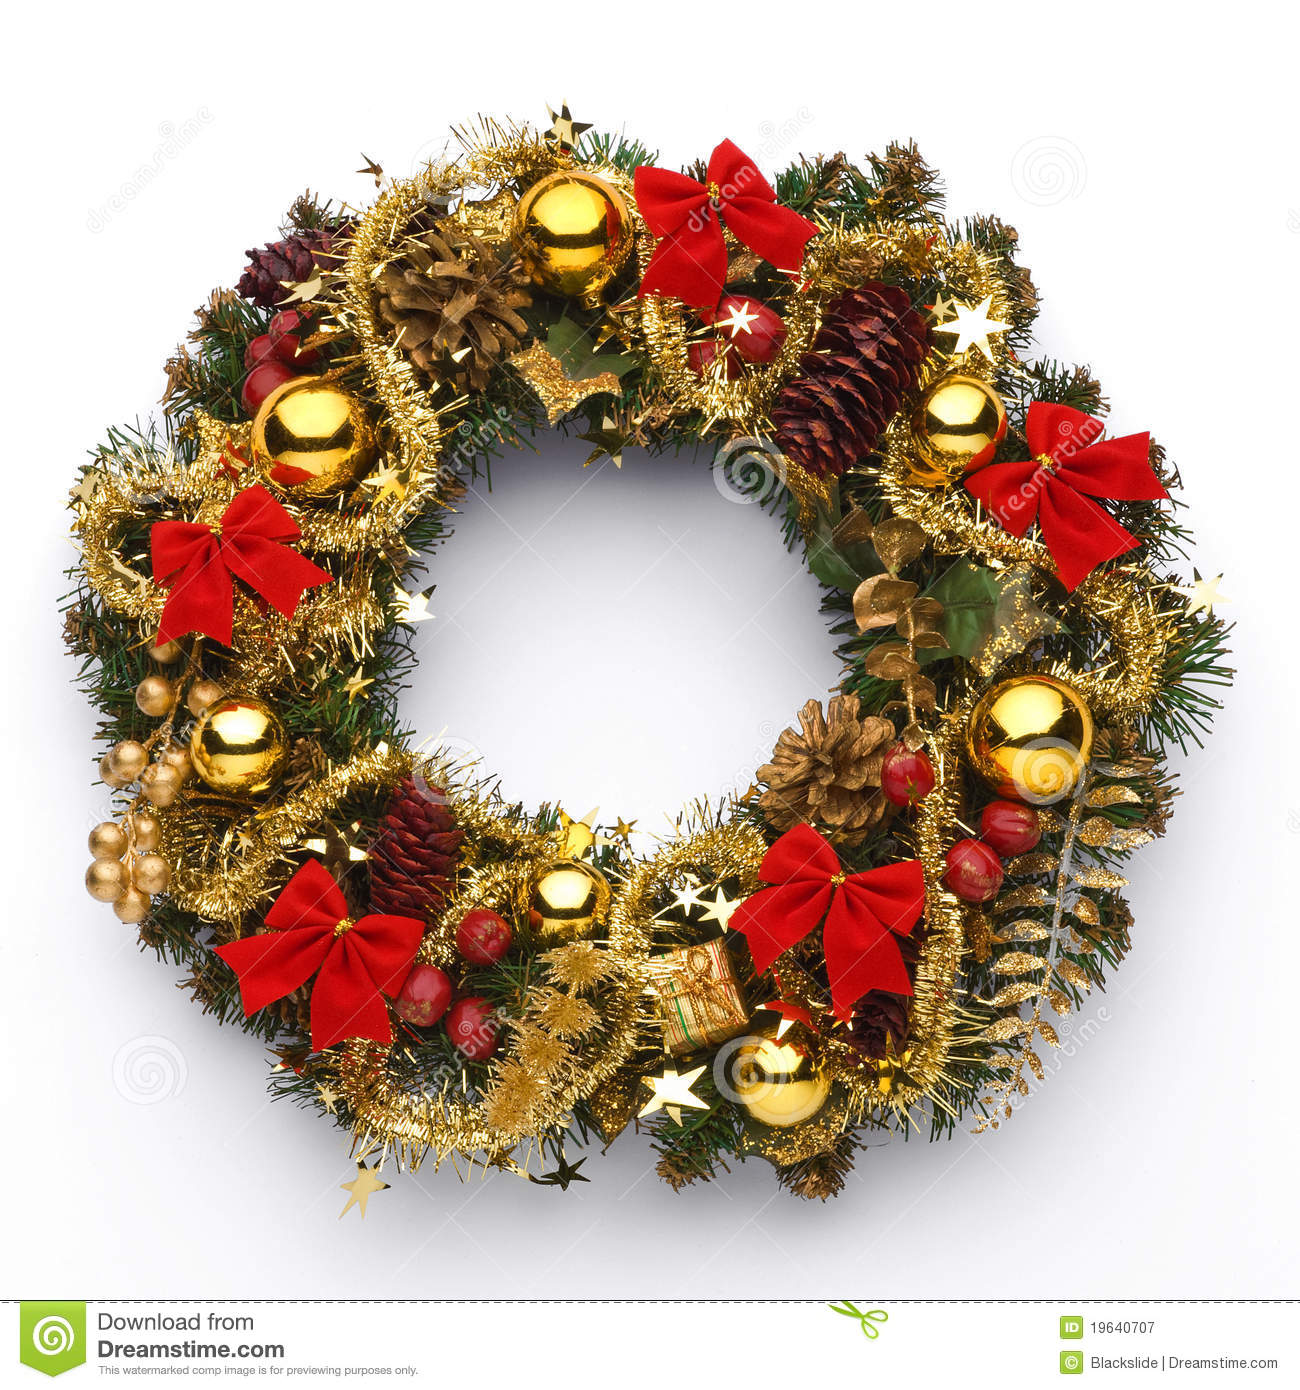 Christmas wreath stock image. Image of gold, festal, door ...